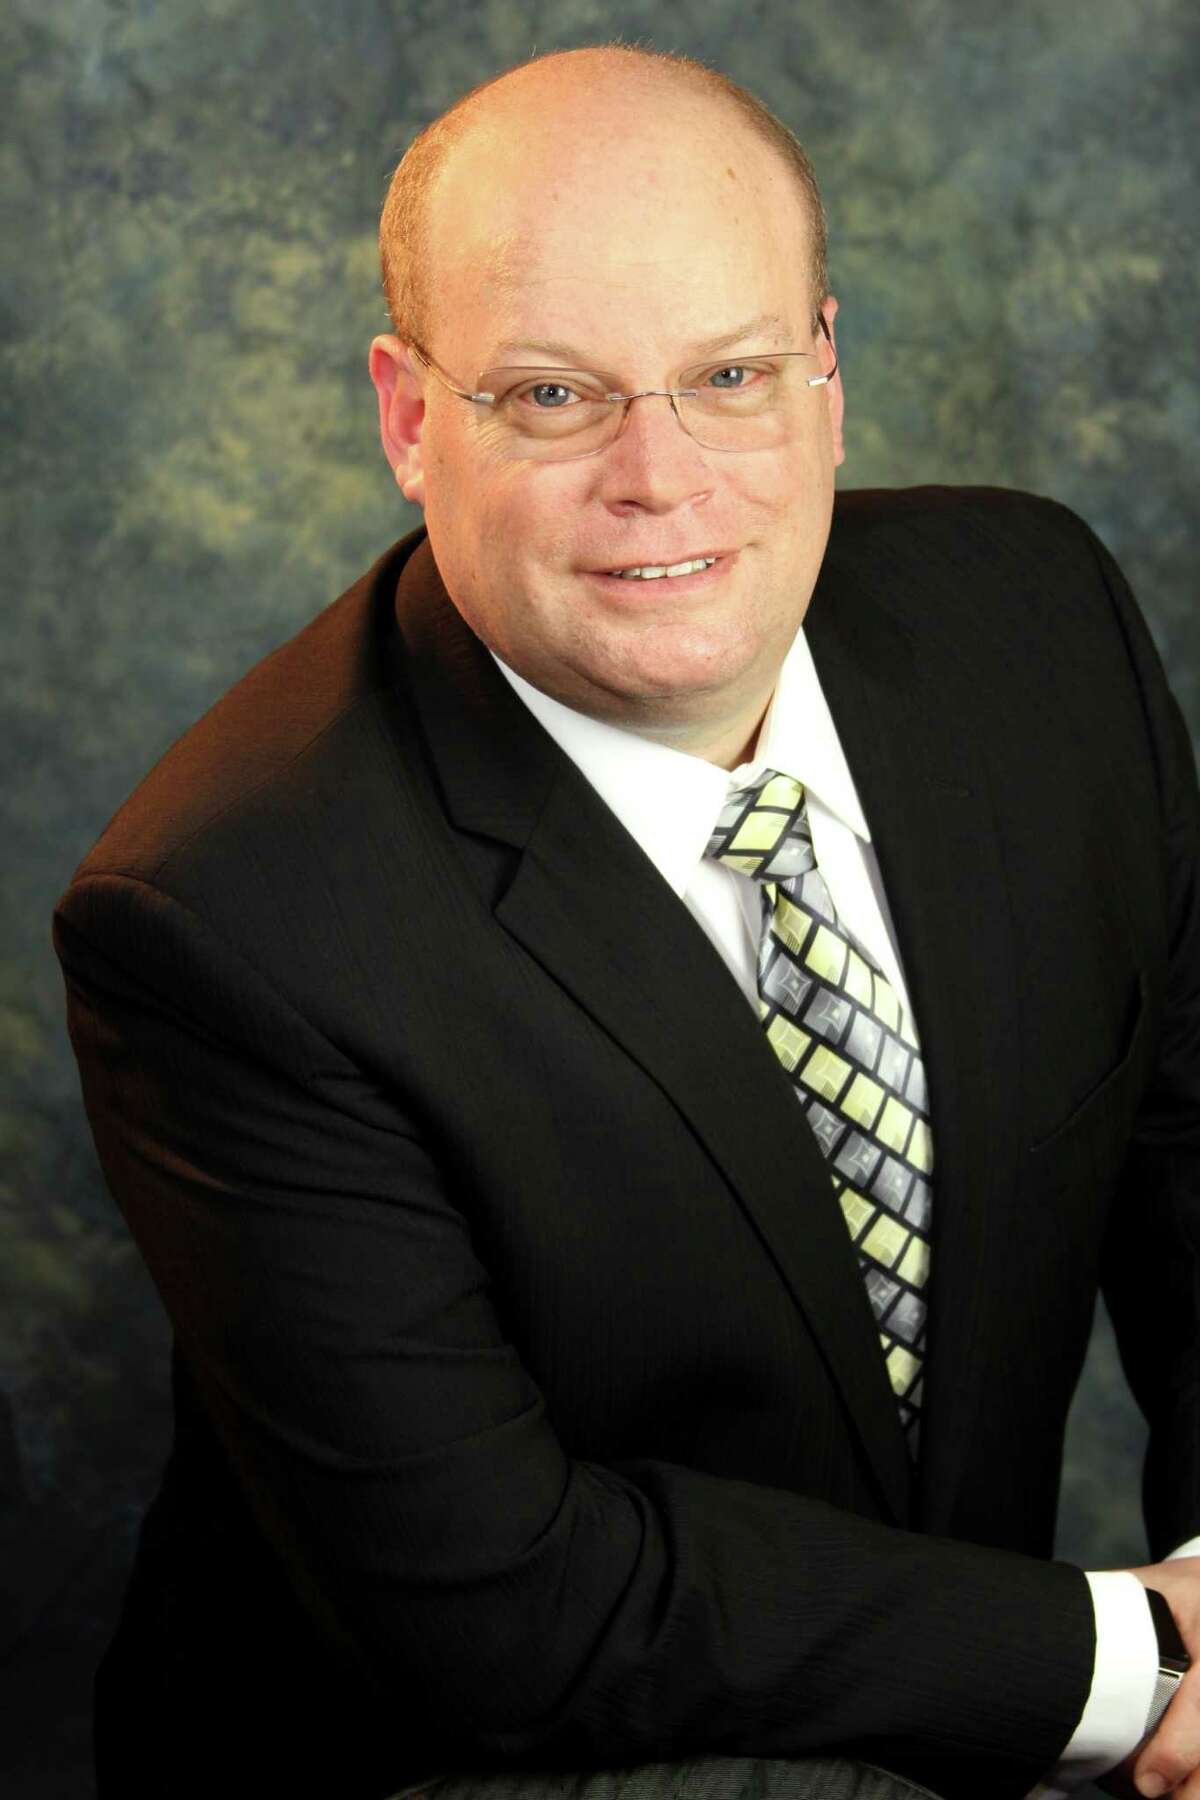 Jesse Holland, founder and president of Sunrise Consulting & Management.